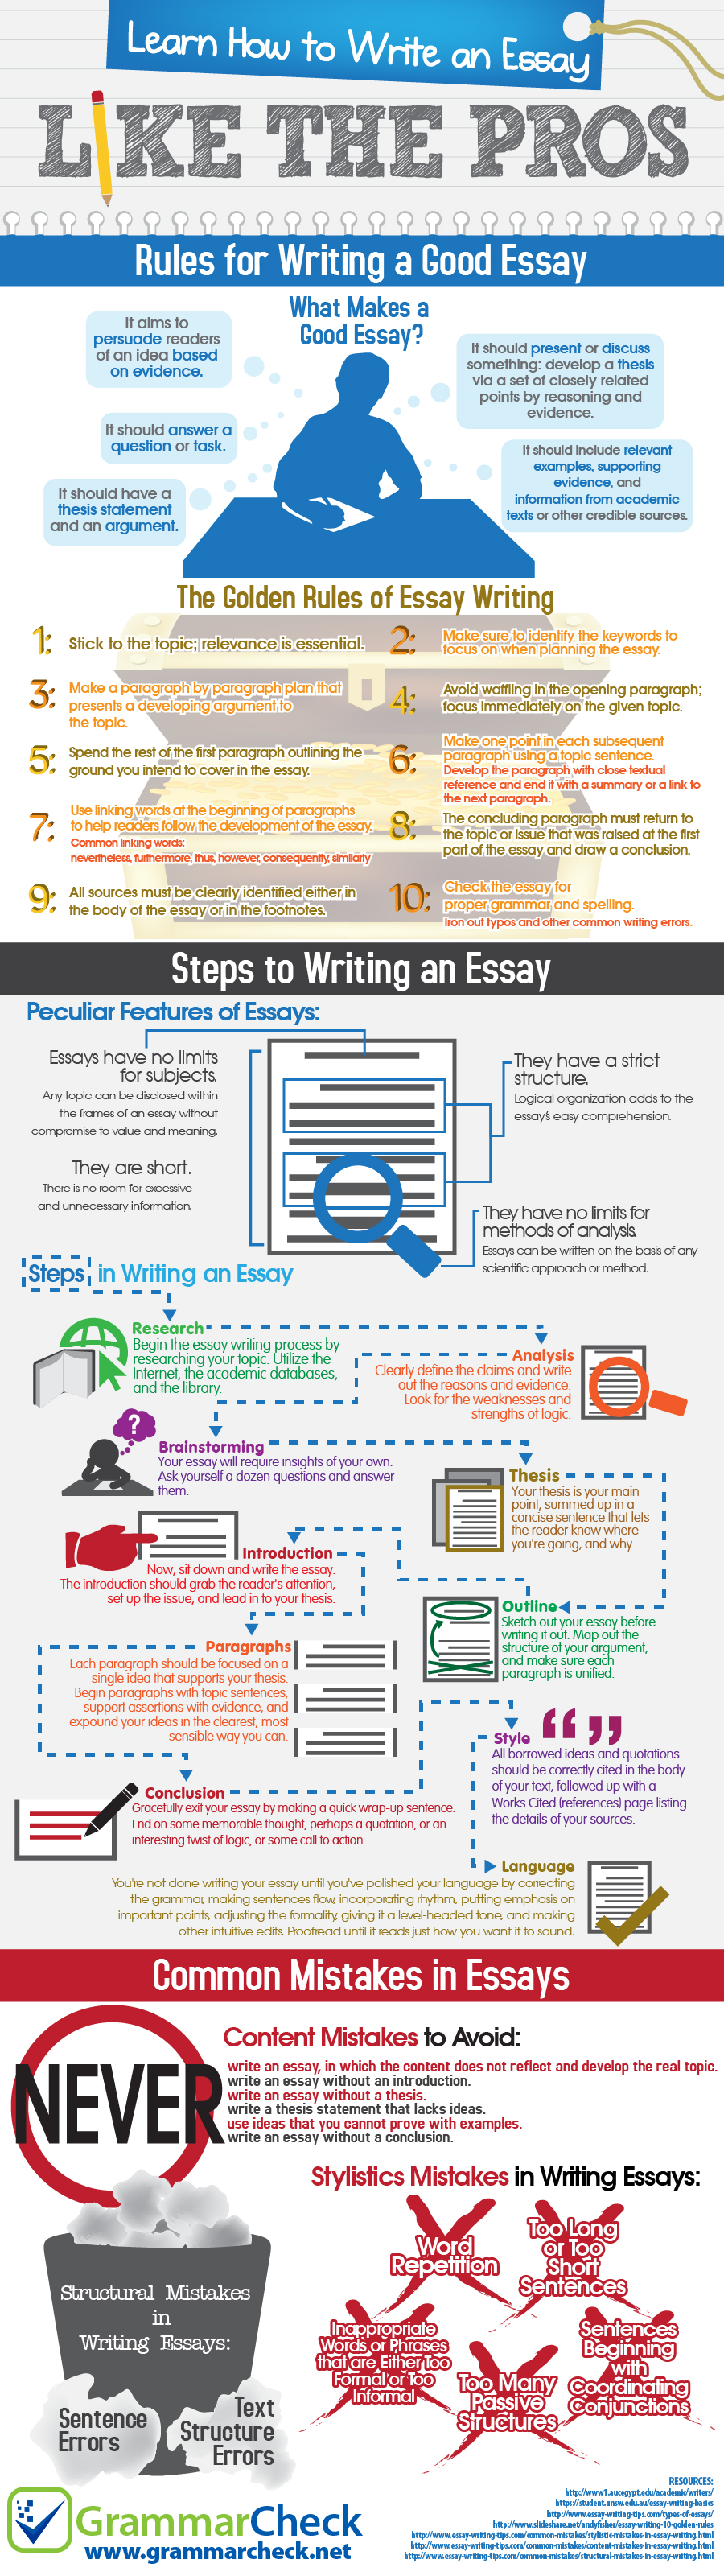 writers essay essay writer uk custom essay writing assistance  essay writer uk custom essay writing assistance